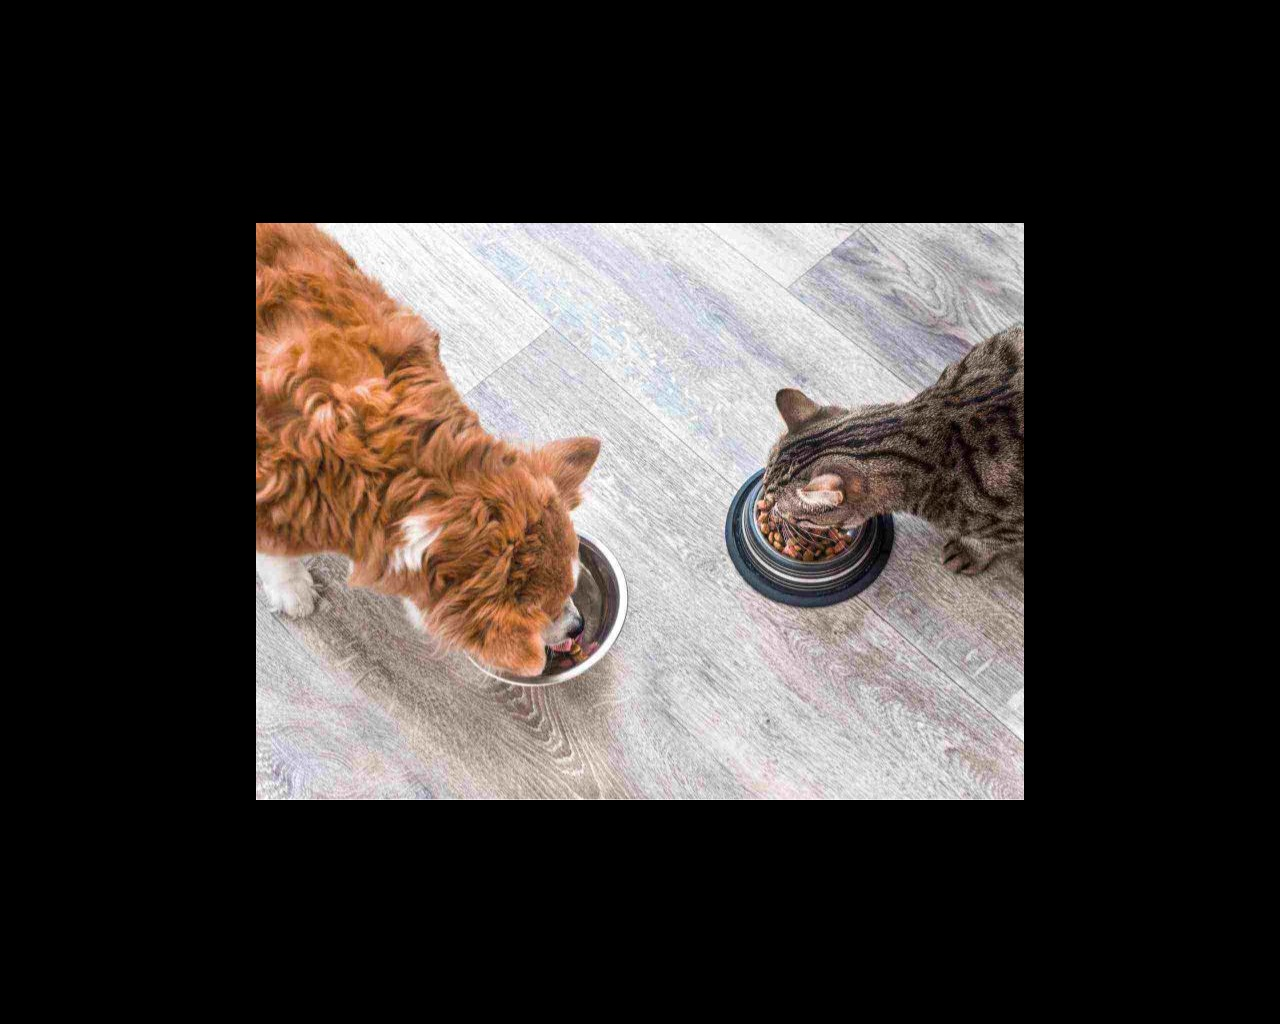 A dog and a cat eating from their food bowls